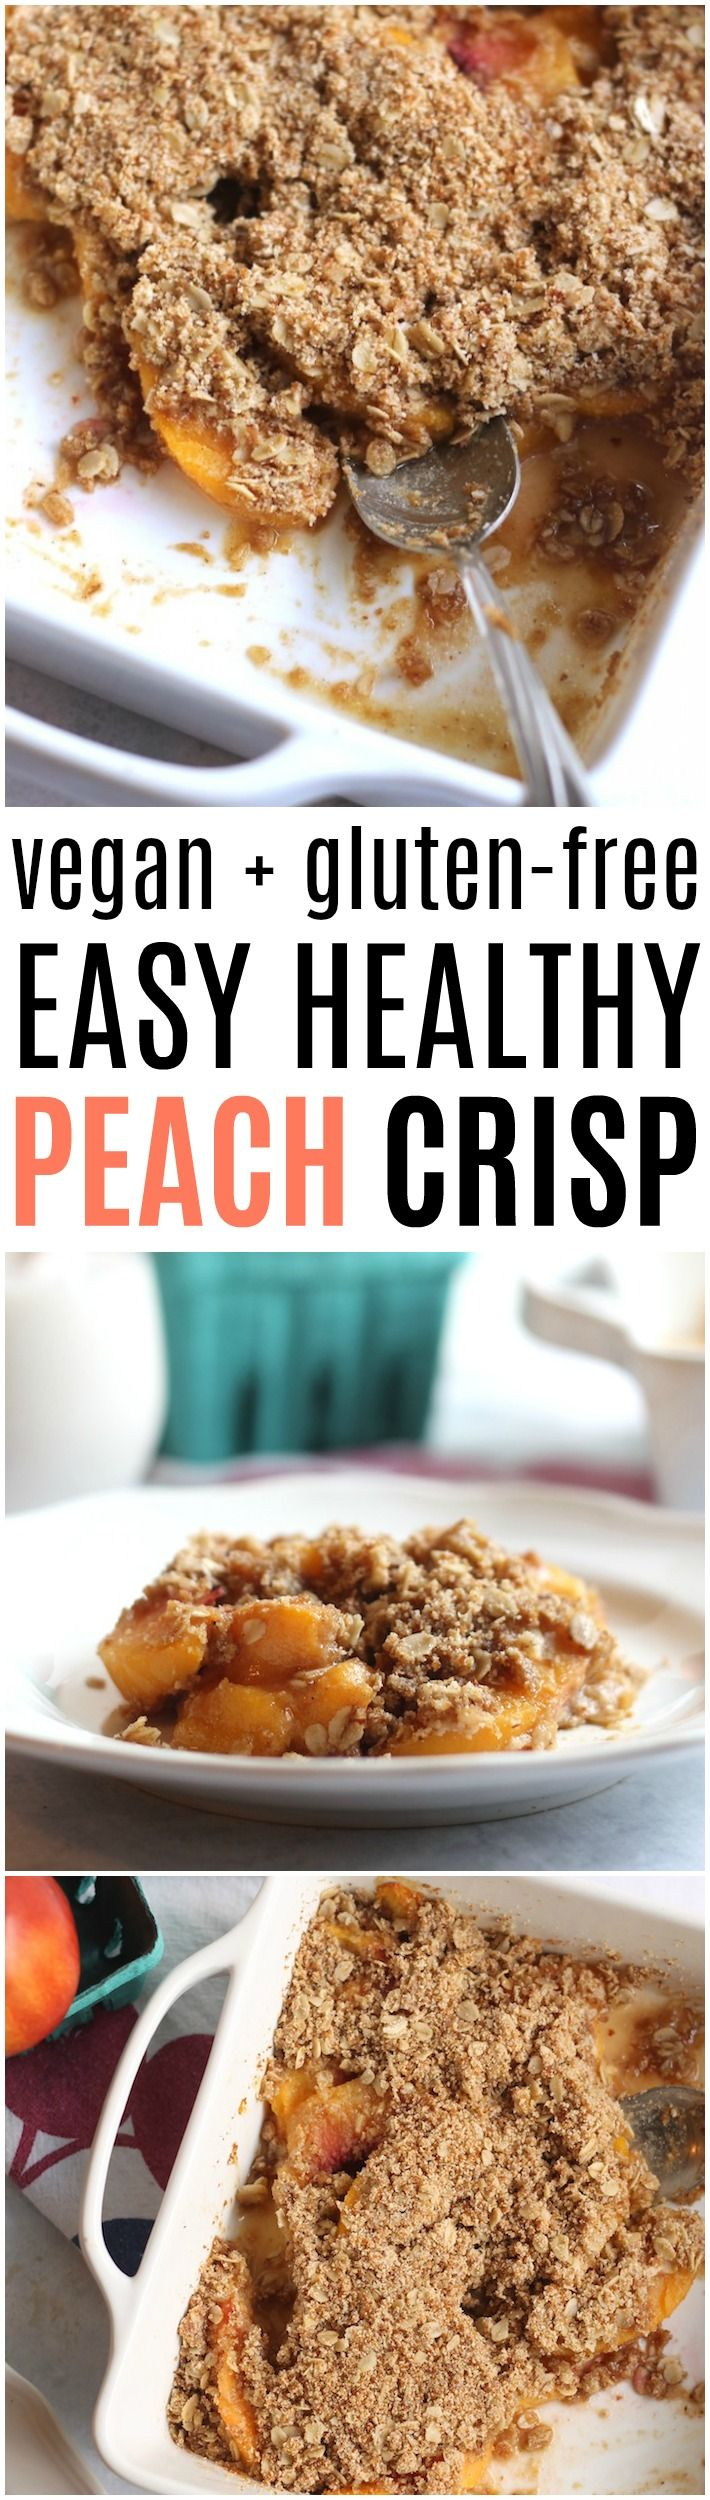 This simple vegan and gluten-free peach crisp only requires 8 ingredients and comes together in minutes! Whip it up for a tasty treat the whole family will adore.